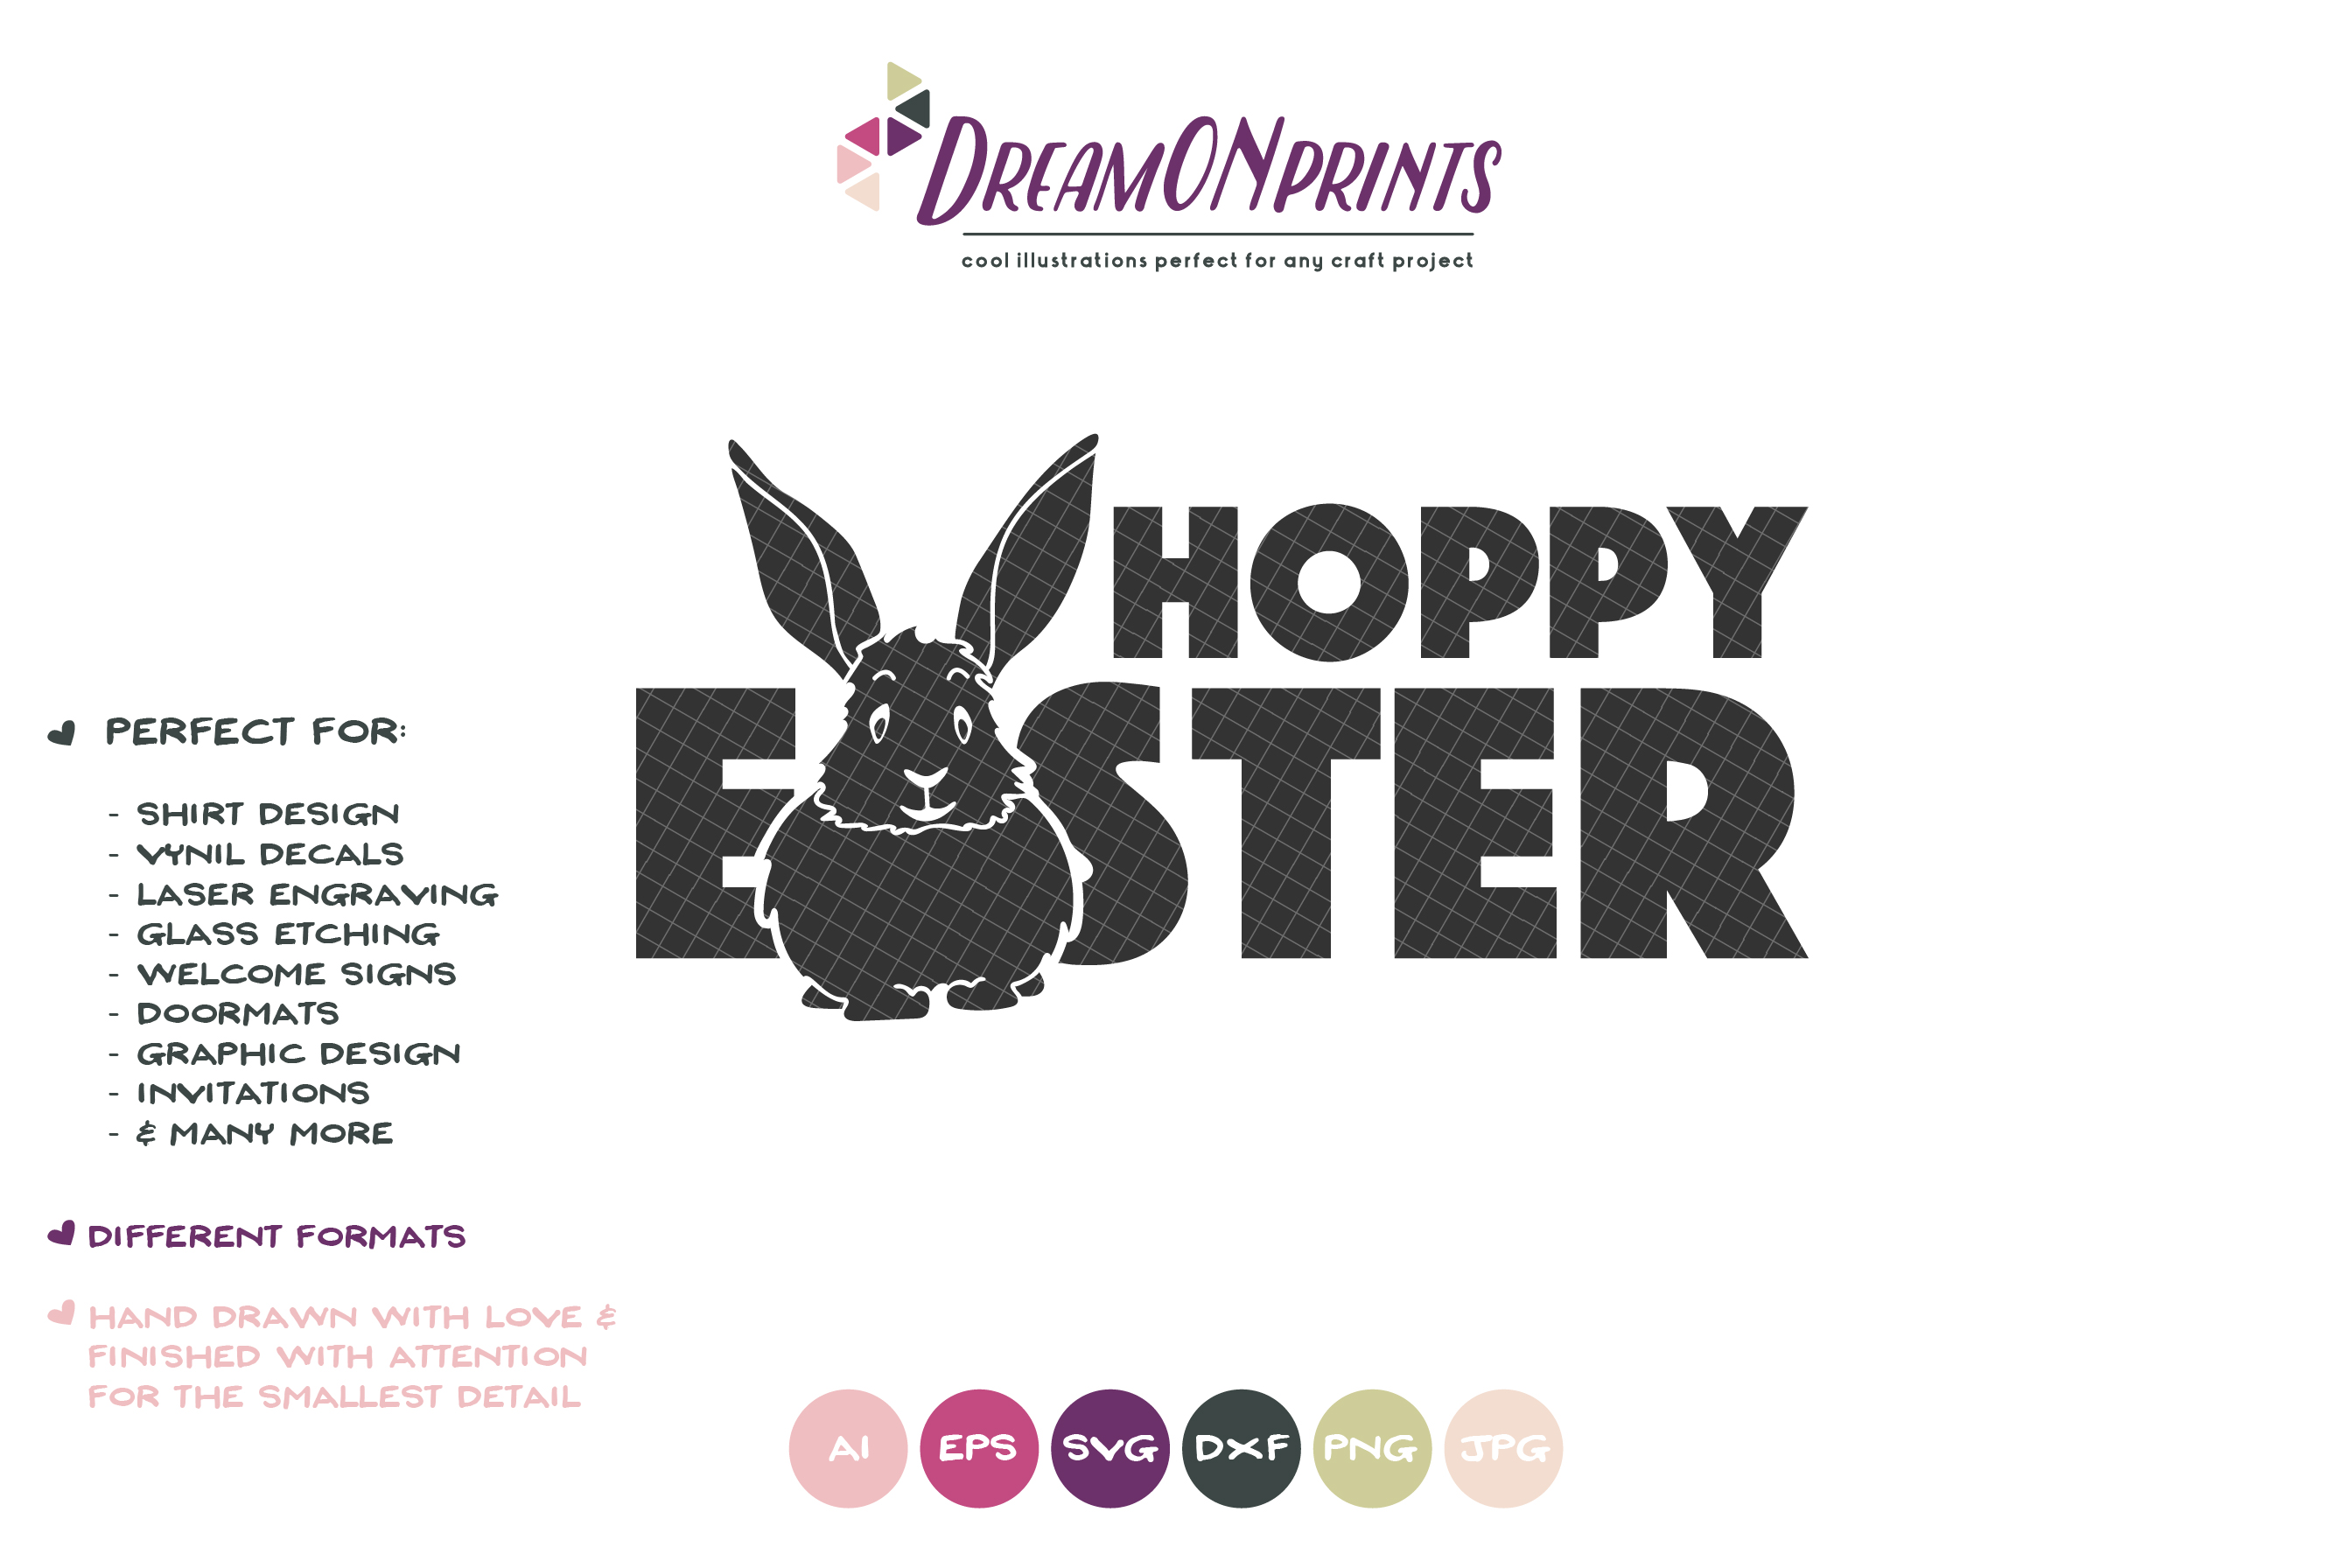 Hoppy Easter SVG - Fun Easter Sign - Easter Bunny SVG example image 2